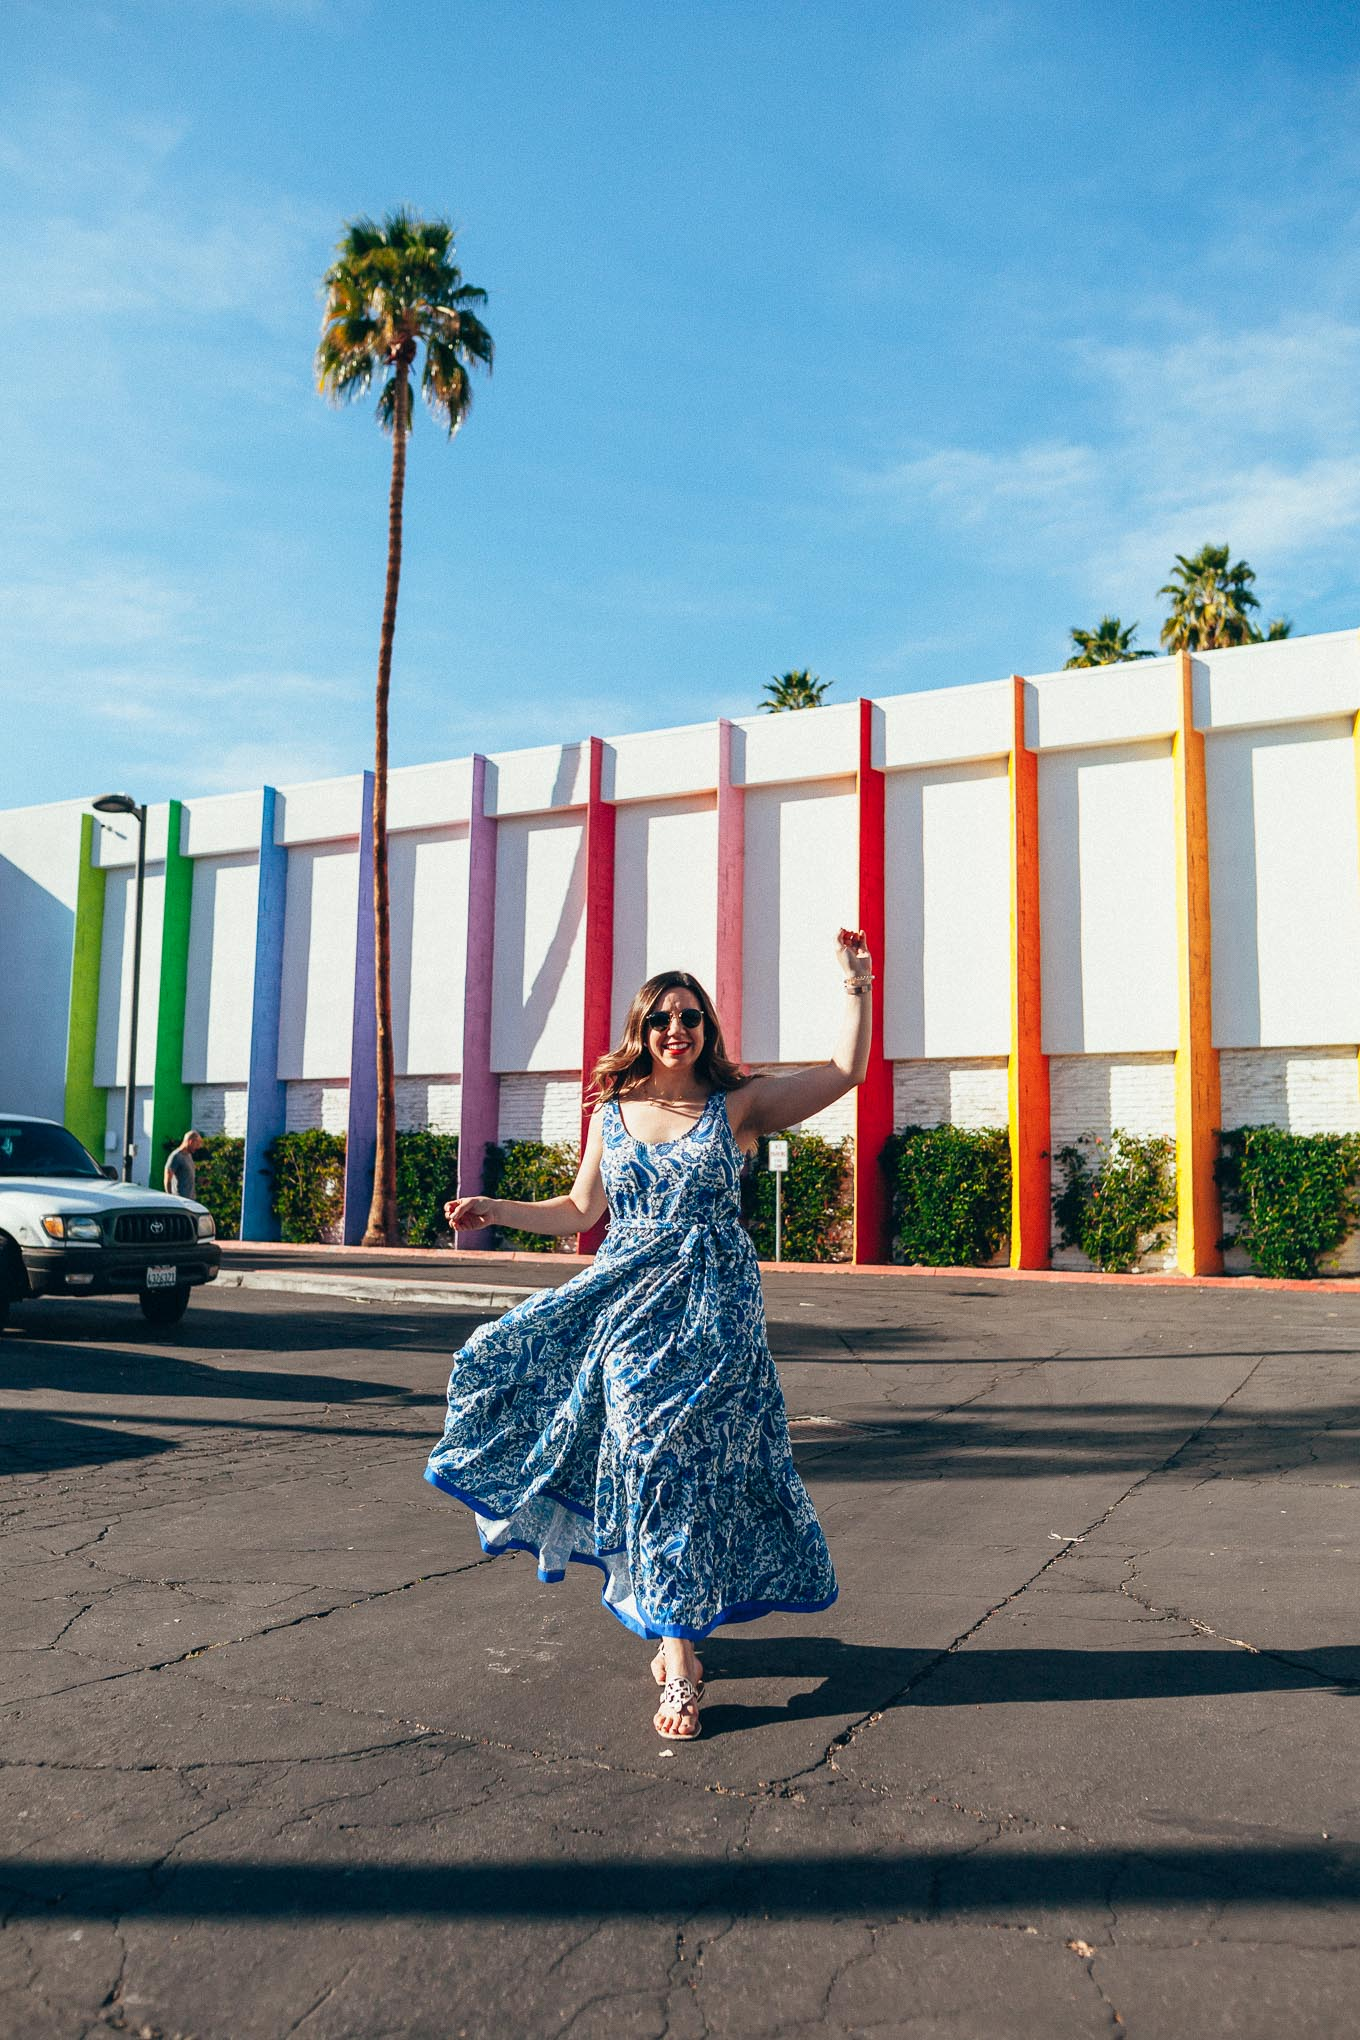 Palm Springs Outfits by popular Chicago fashion blog, Just Add Glam: image of a woman standing in front of a rainbow colored hotel and wearing a Red Dress Noticing You Blue Multi Print Maxi Dress, Nordstrom Miller Flip Flop TORY BURCH, and Nordstrom Icons 53mm Retro Sunglasses RAY-BAN.